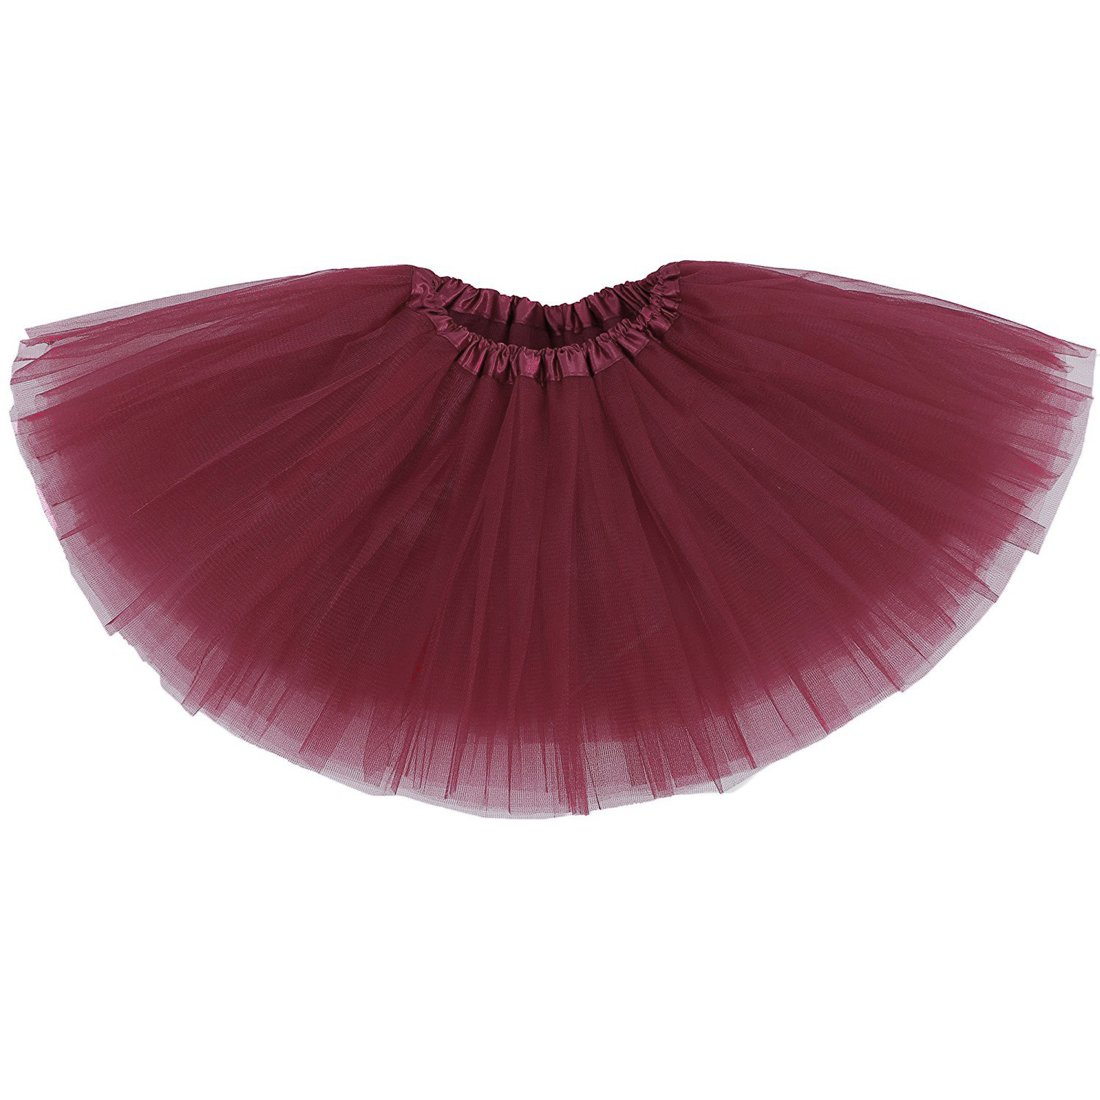 Honey Qiao Baby Girl's Tutu Tulle Layers Skirts ( 6 M to 8 T )